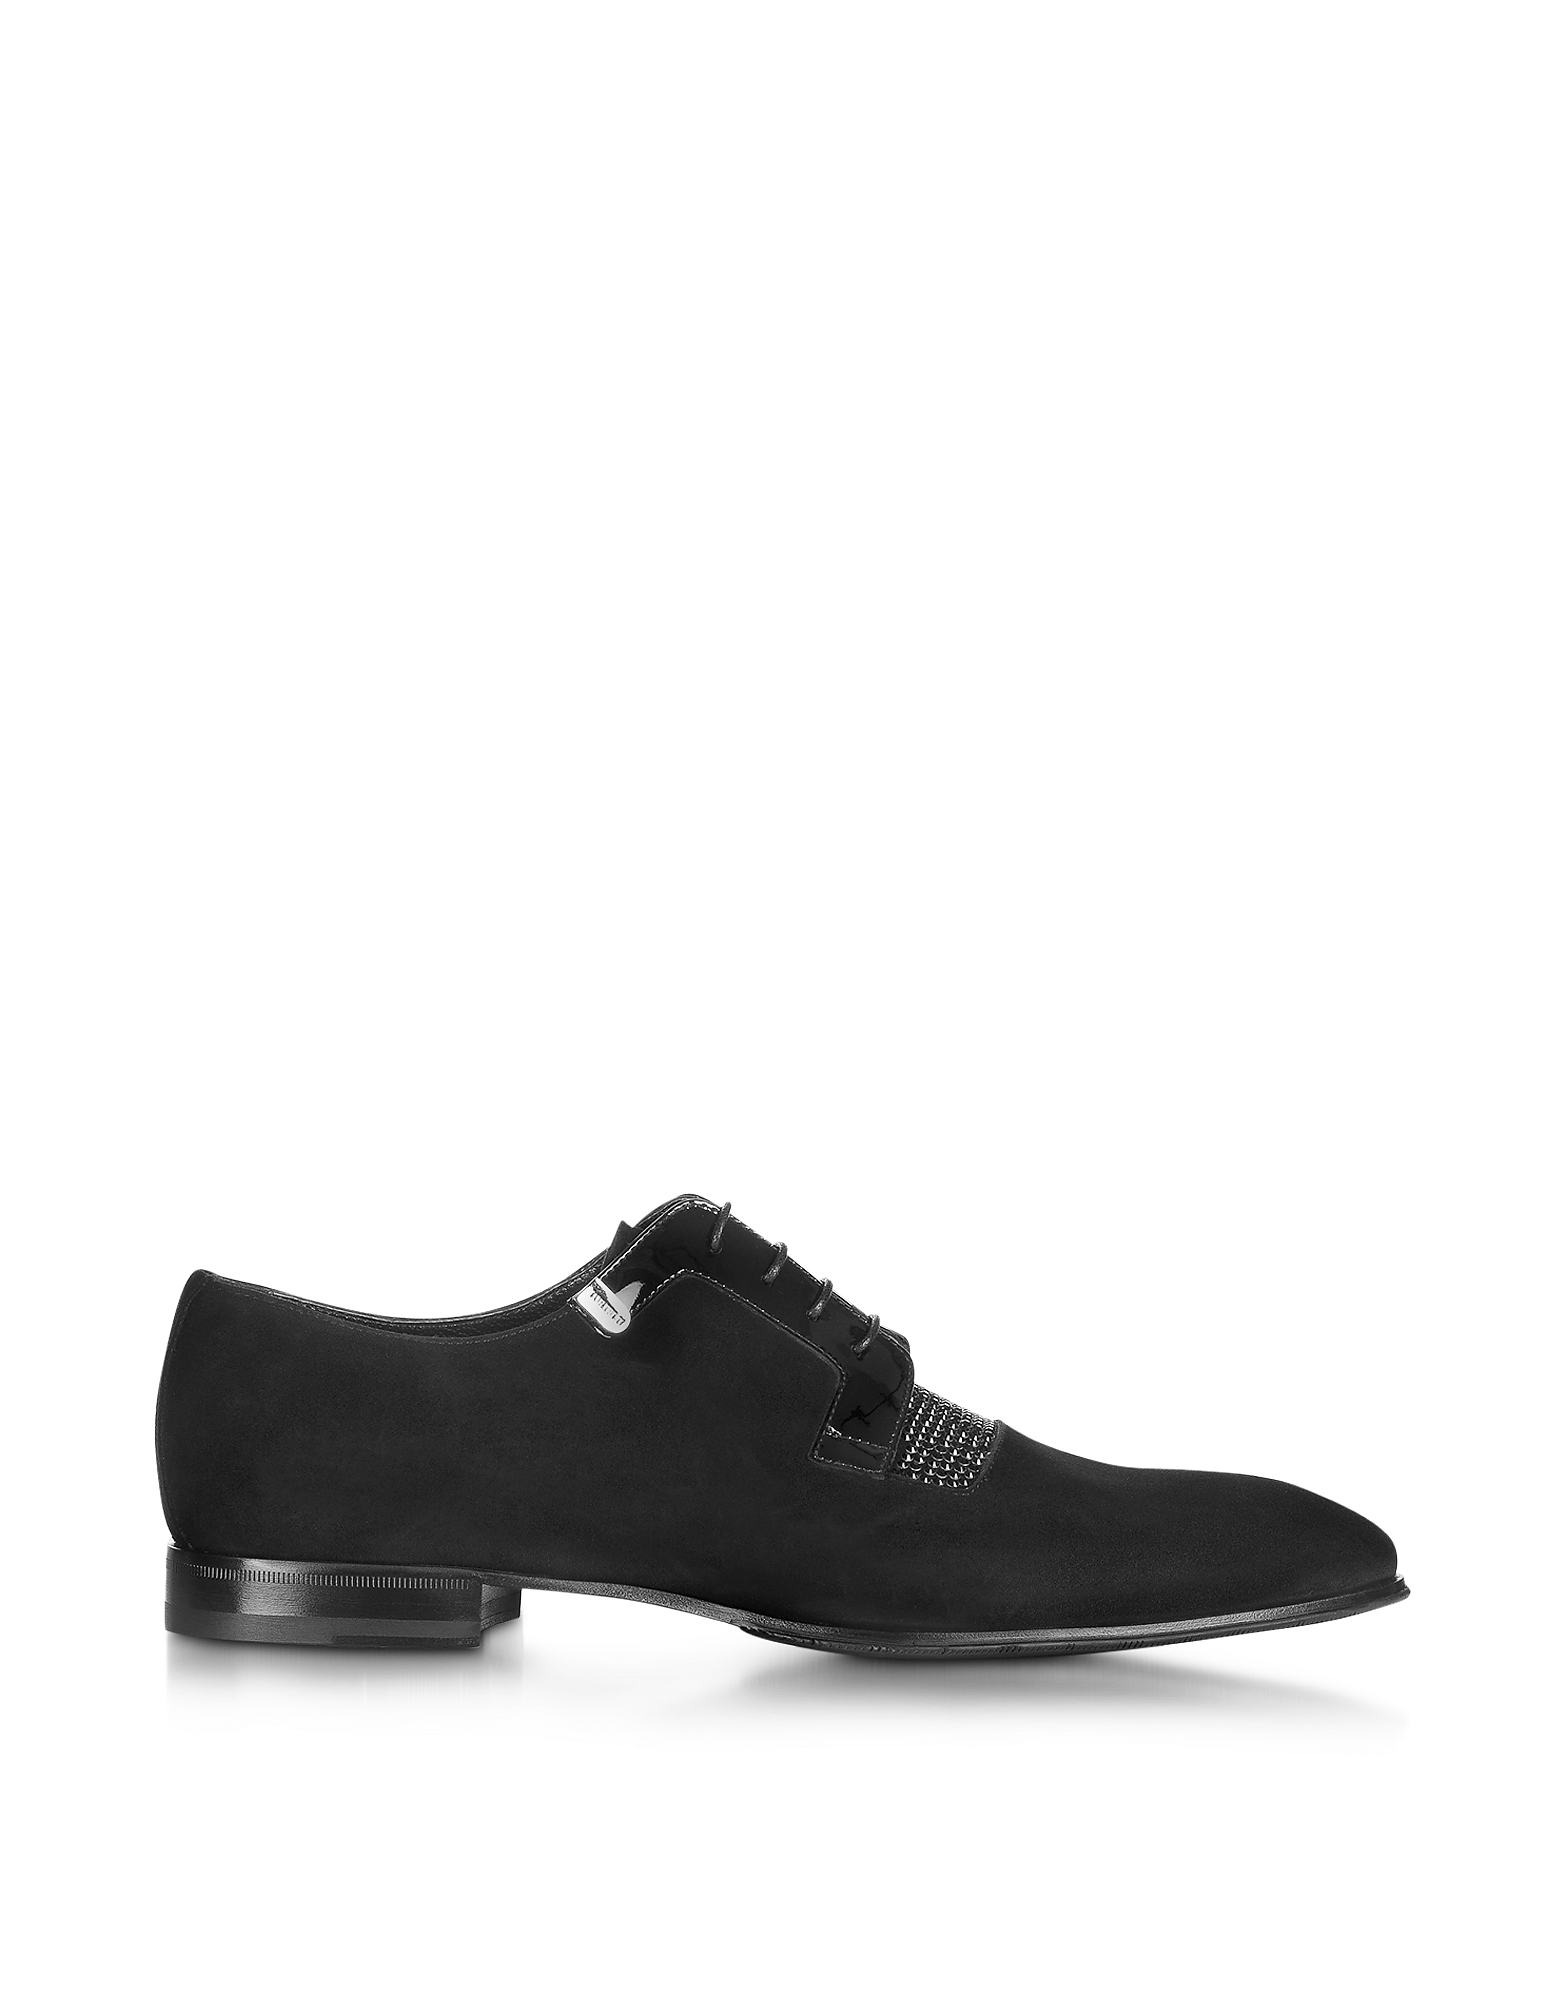 Loriblu Shoes, Black Suede Lace up Shoe with Patent Details and Crystals